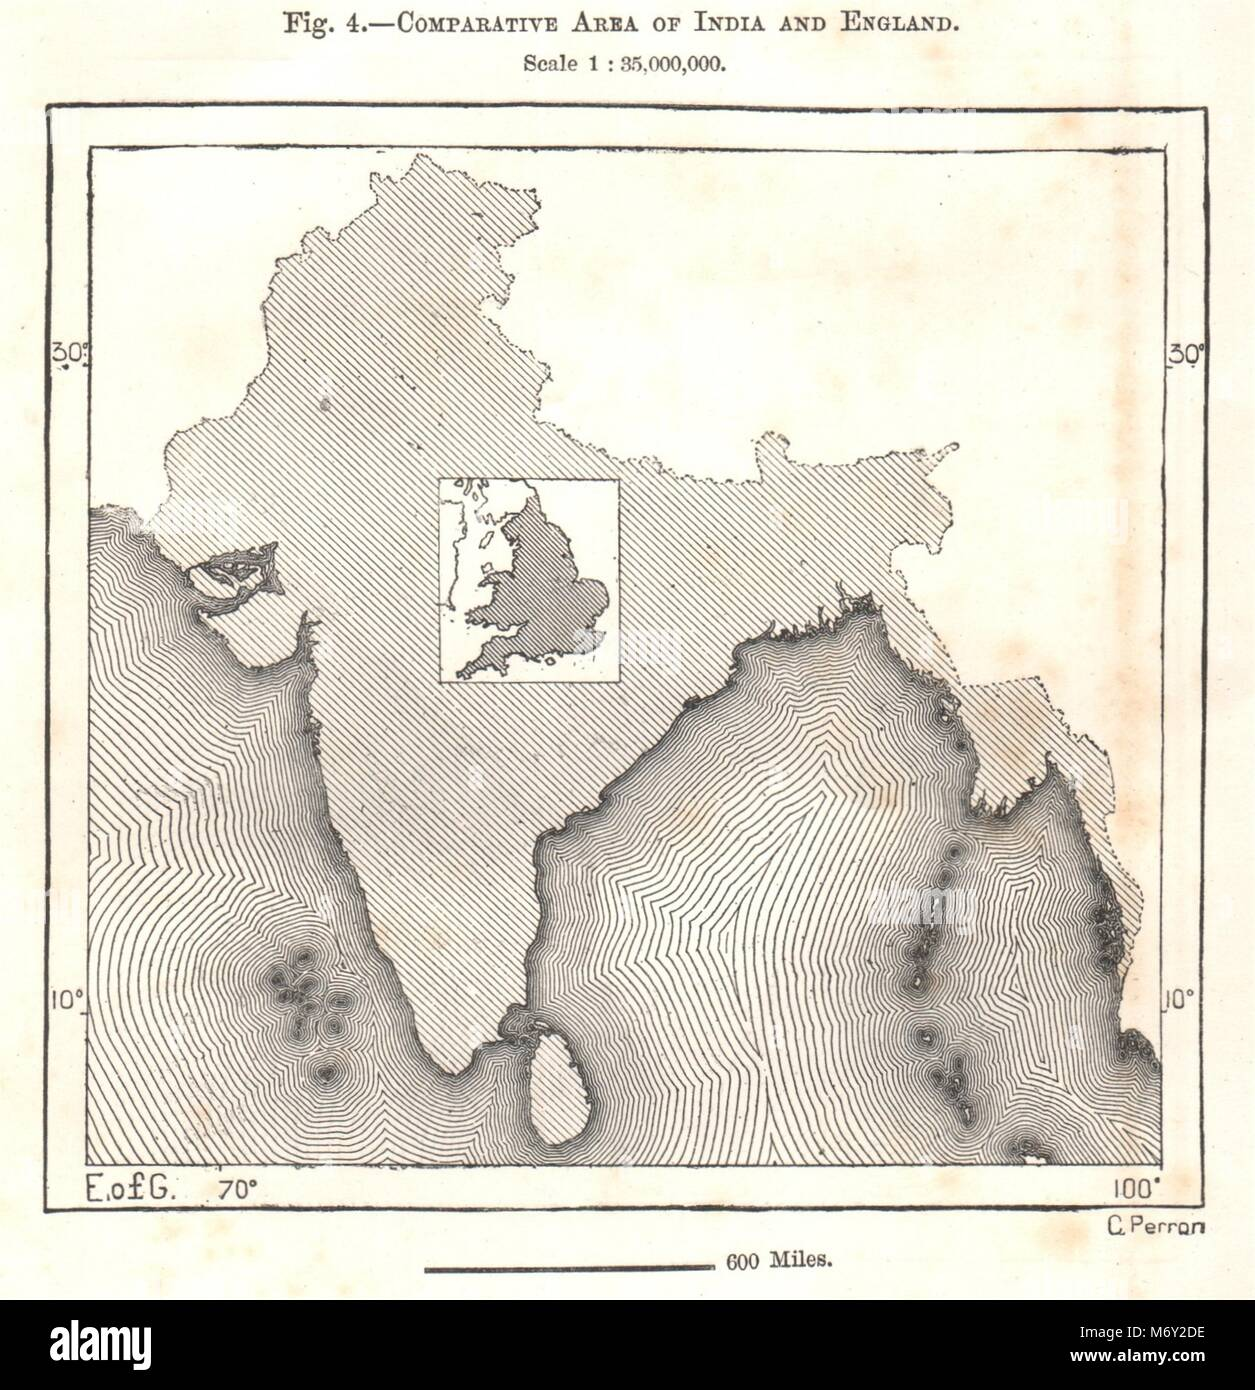 India england stock photos india england stock images alamy comparative area of india and england sketch map 1885 old antique chart stock image gumiabroncs Image collections